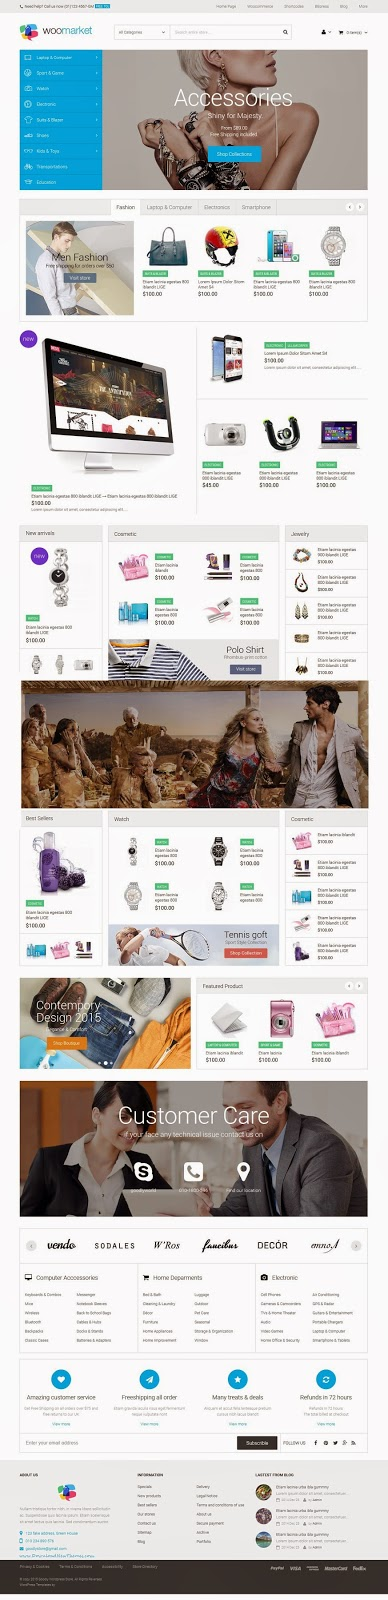 Free WordPress WooCommerce Theme 2015